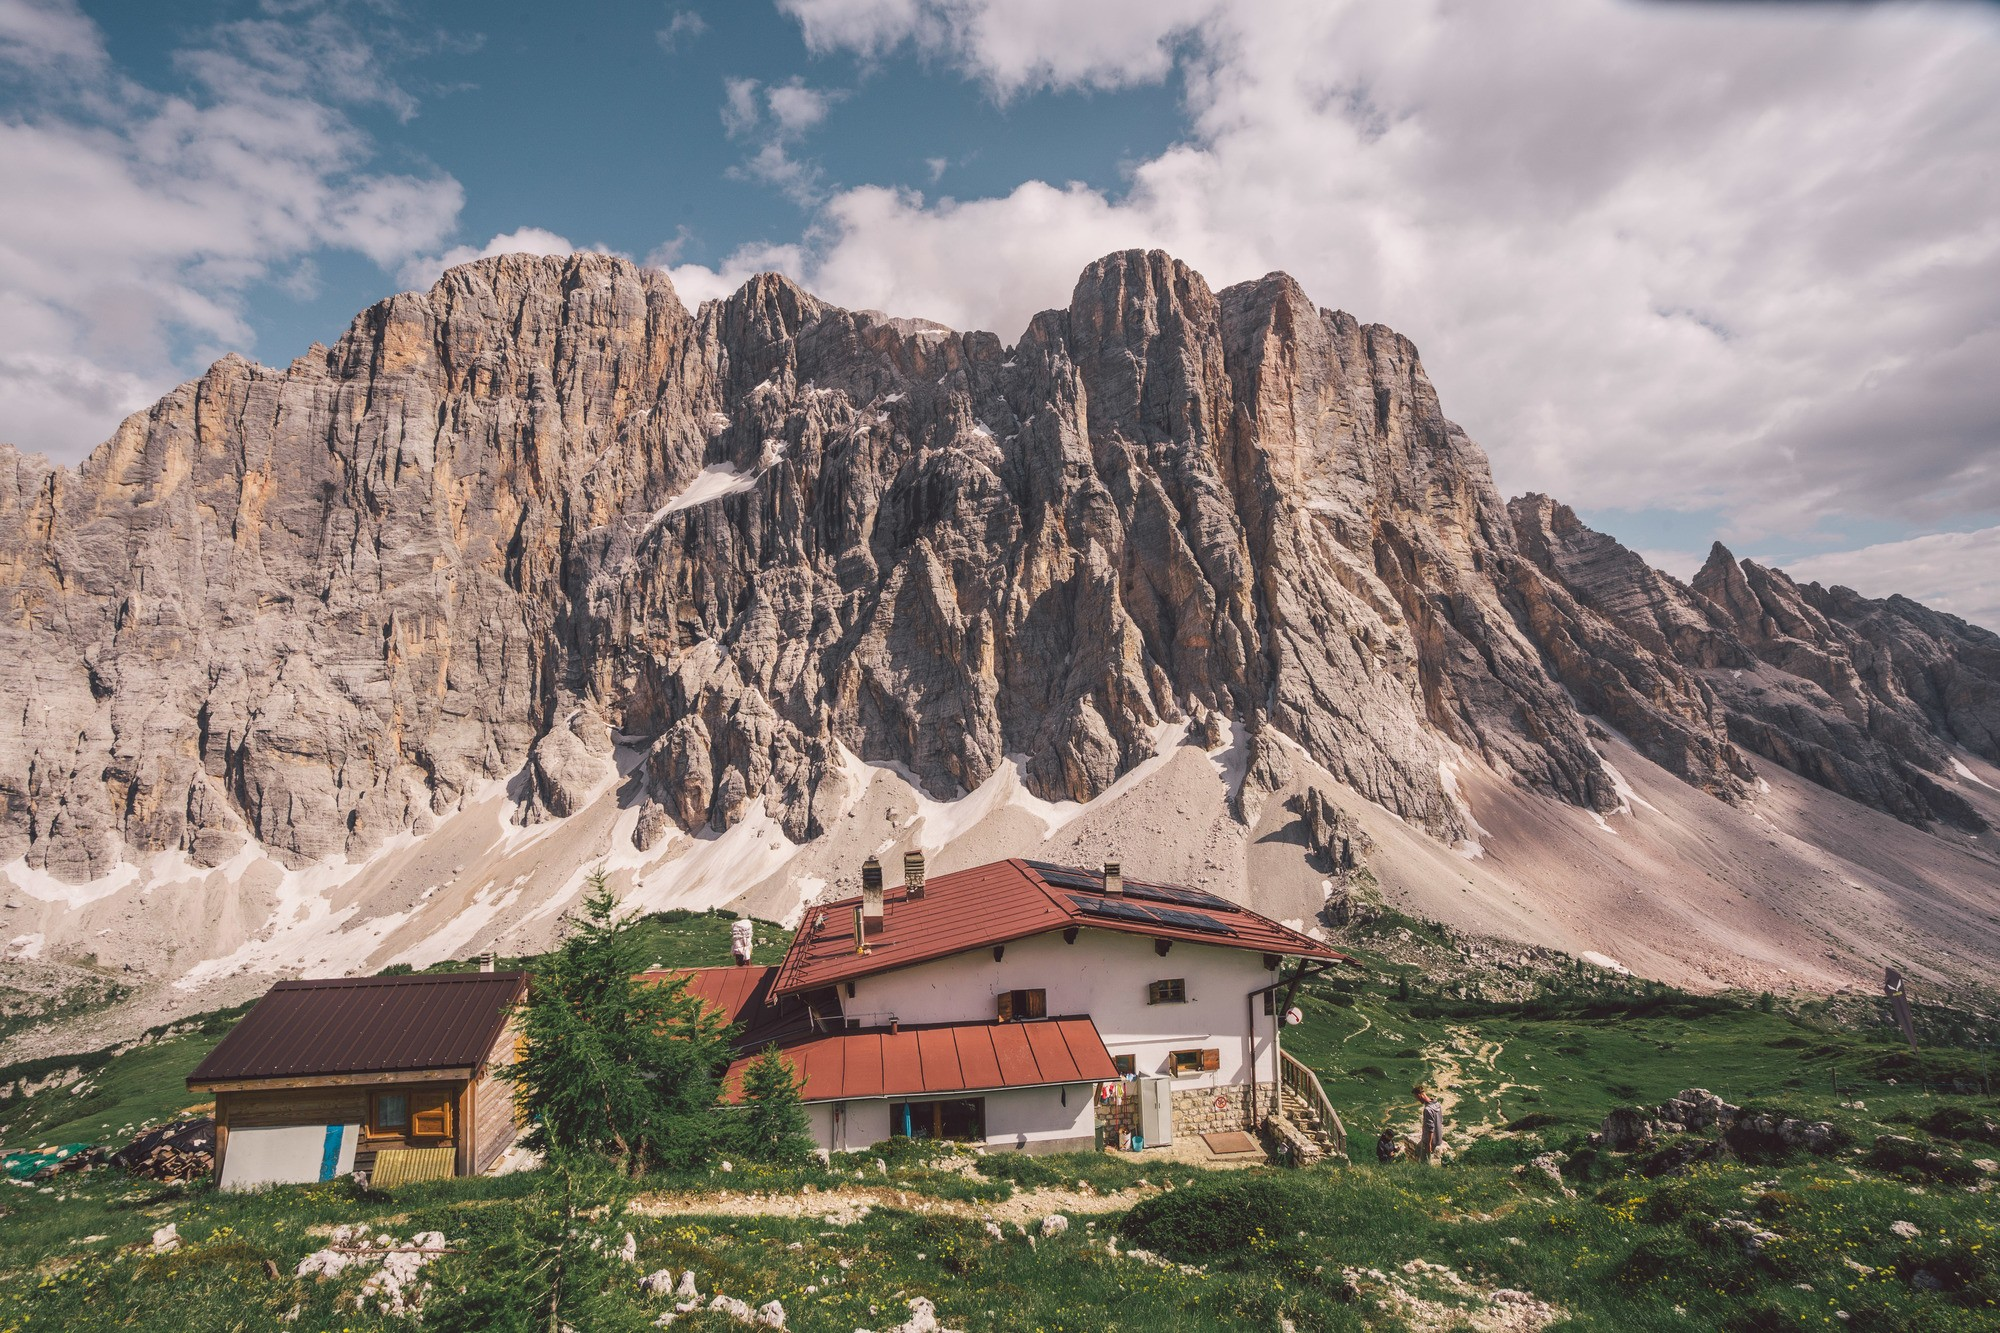 rifugios in the dolomites